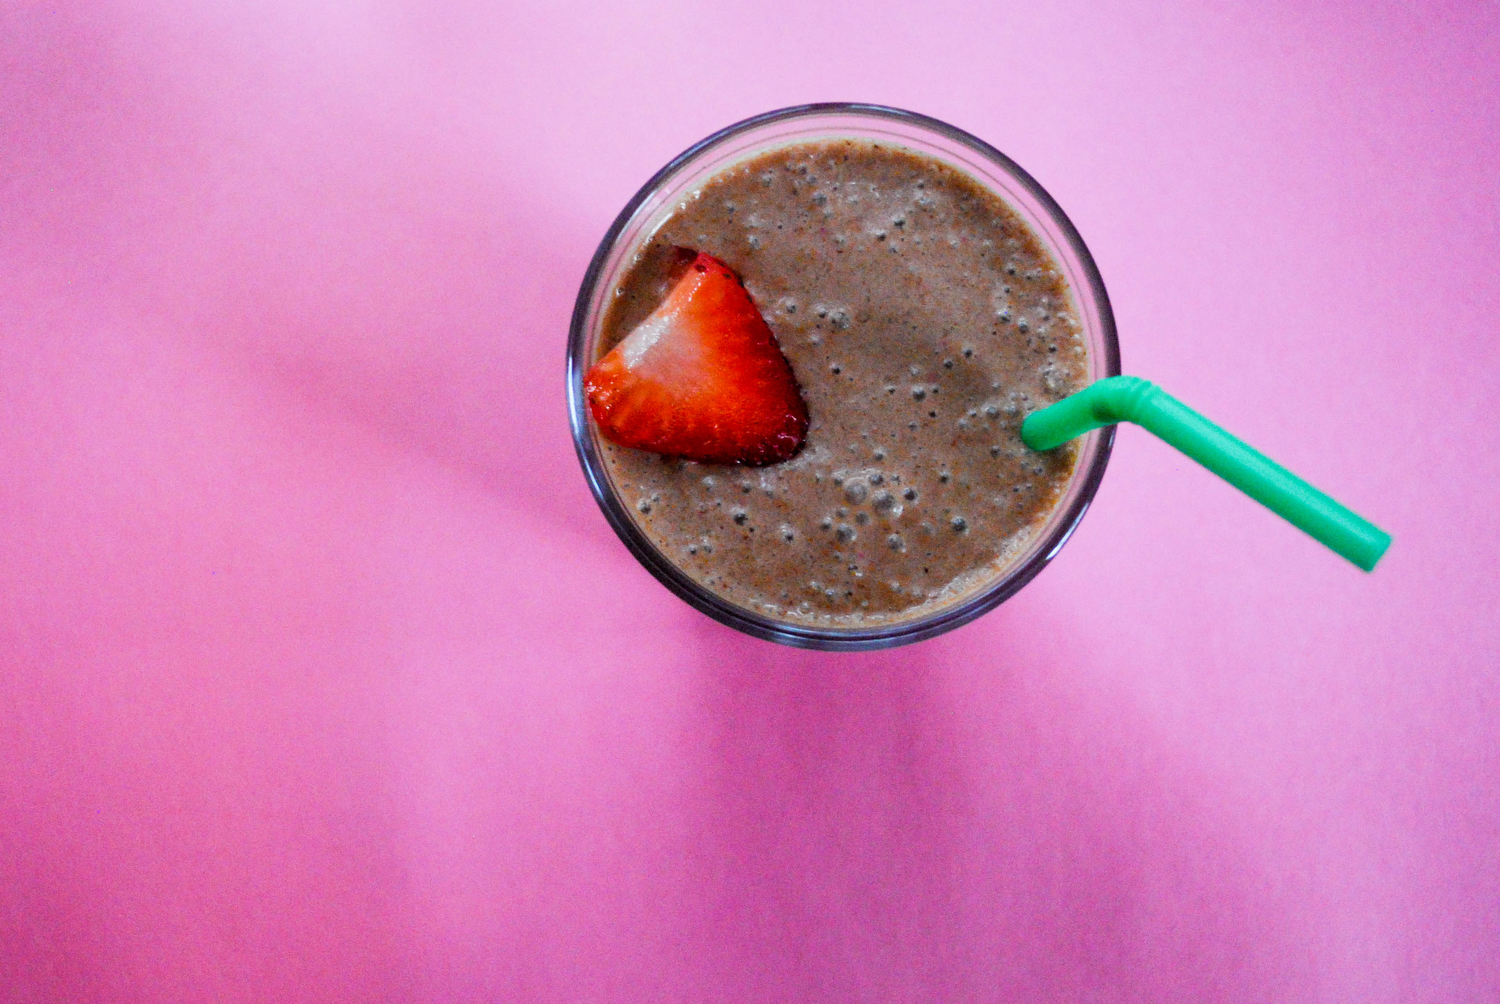 Strawberry smoothie with chocolate-hazelnut butter and cinnamon | Freckle & Fair